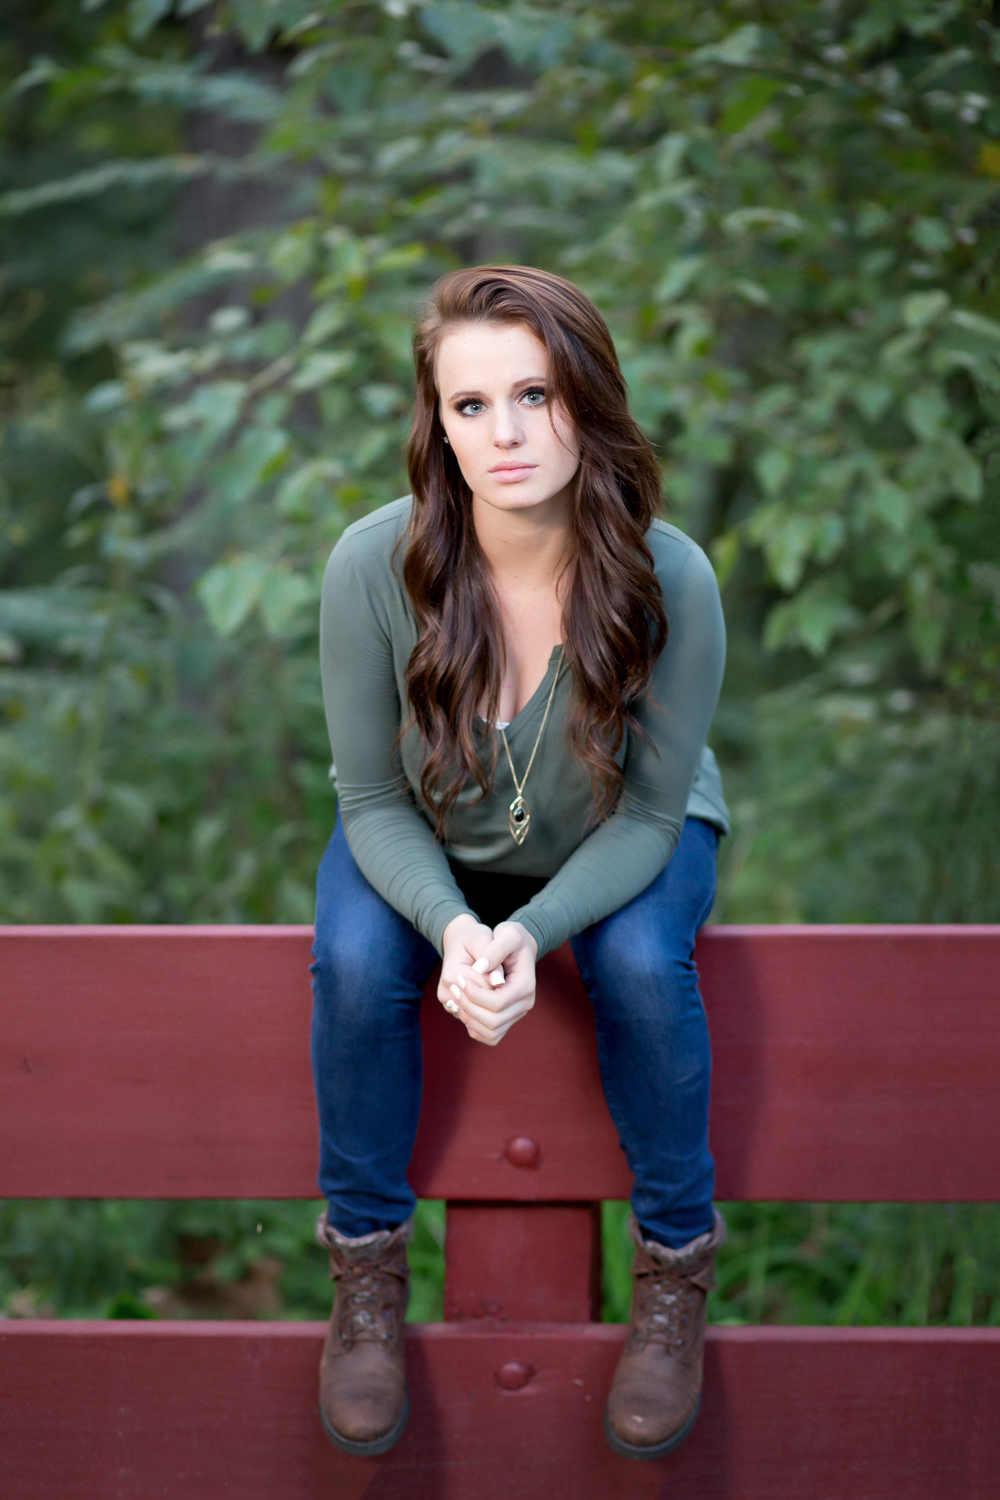 brunette senior girl wearing green long-sleeve top blue jeans and boots sitting on a red wooden rail with greenery behind her in Fredericksburg Ohio